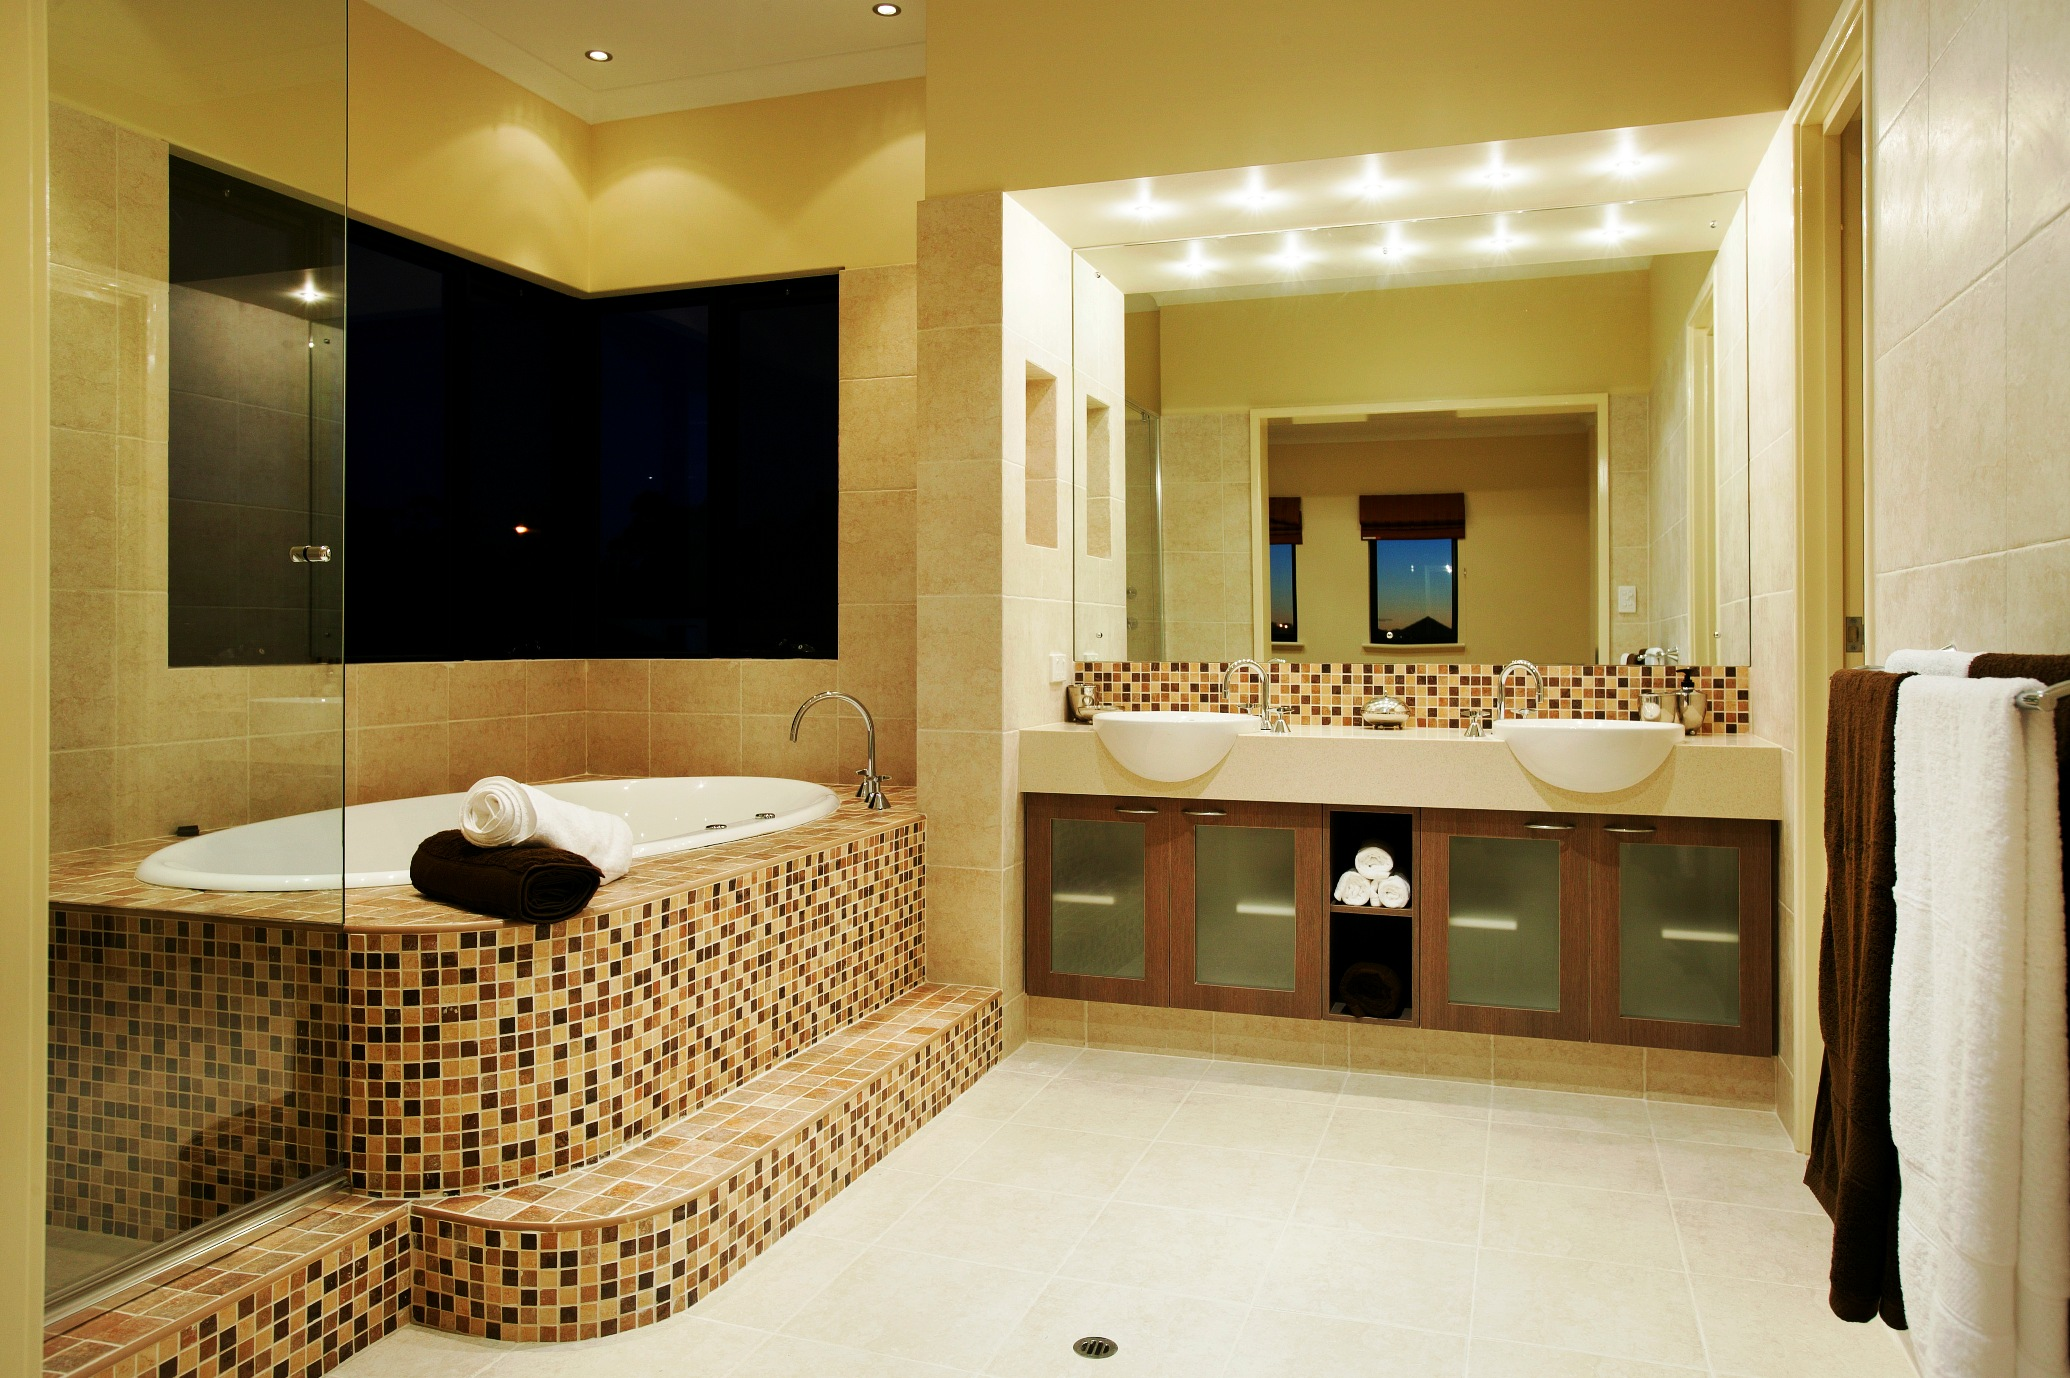 home bathroom design ideas photo - 8